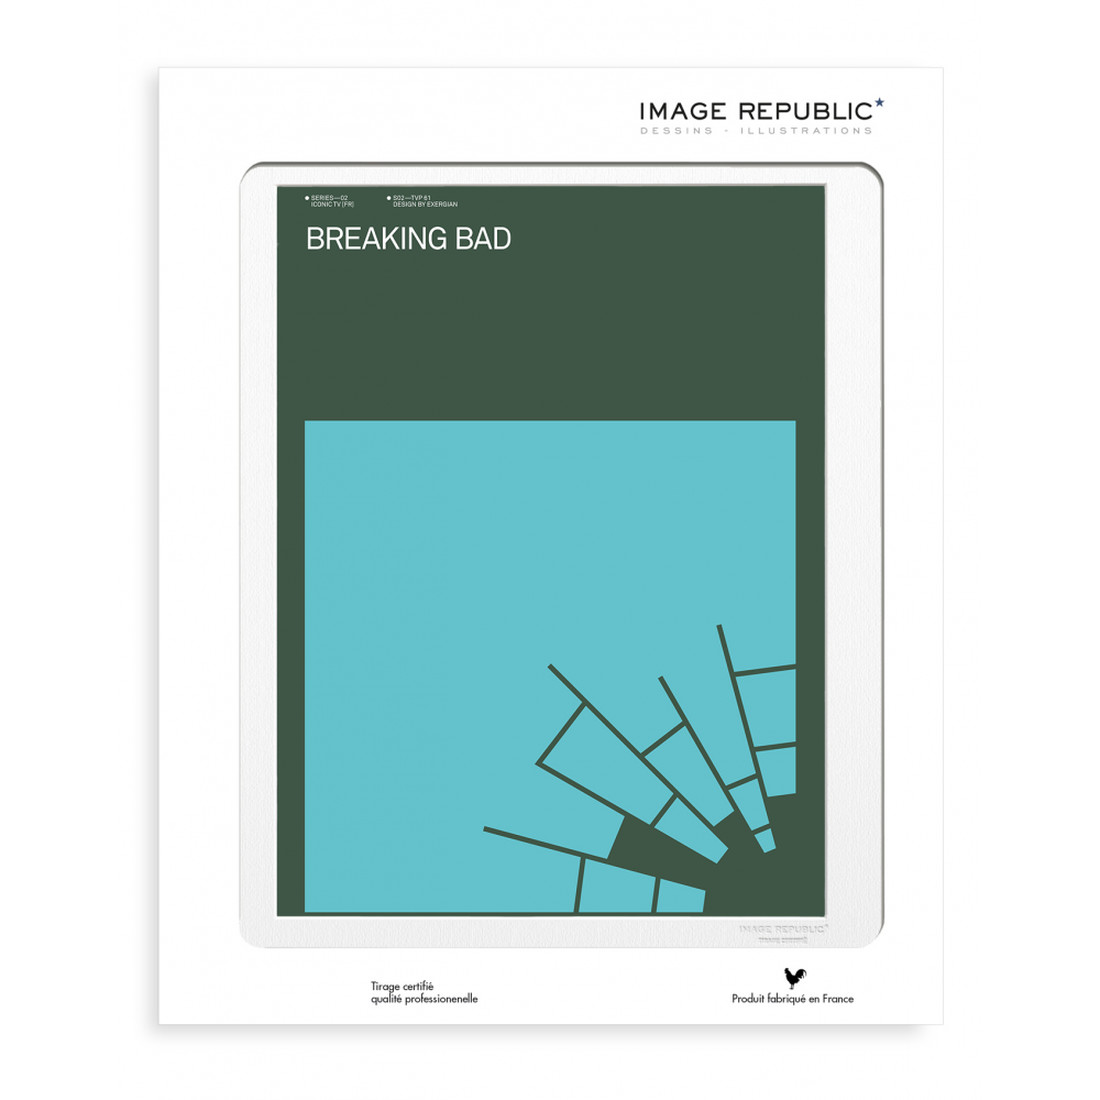 EXERGIAN TV BREAKING BAD Wandbild 30x40cm by Image Republic: